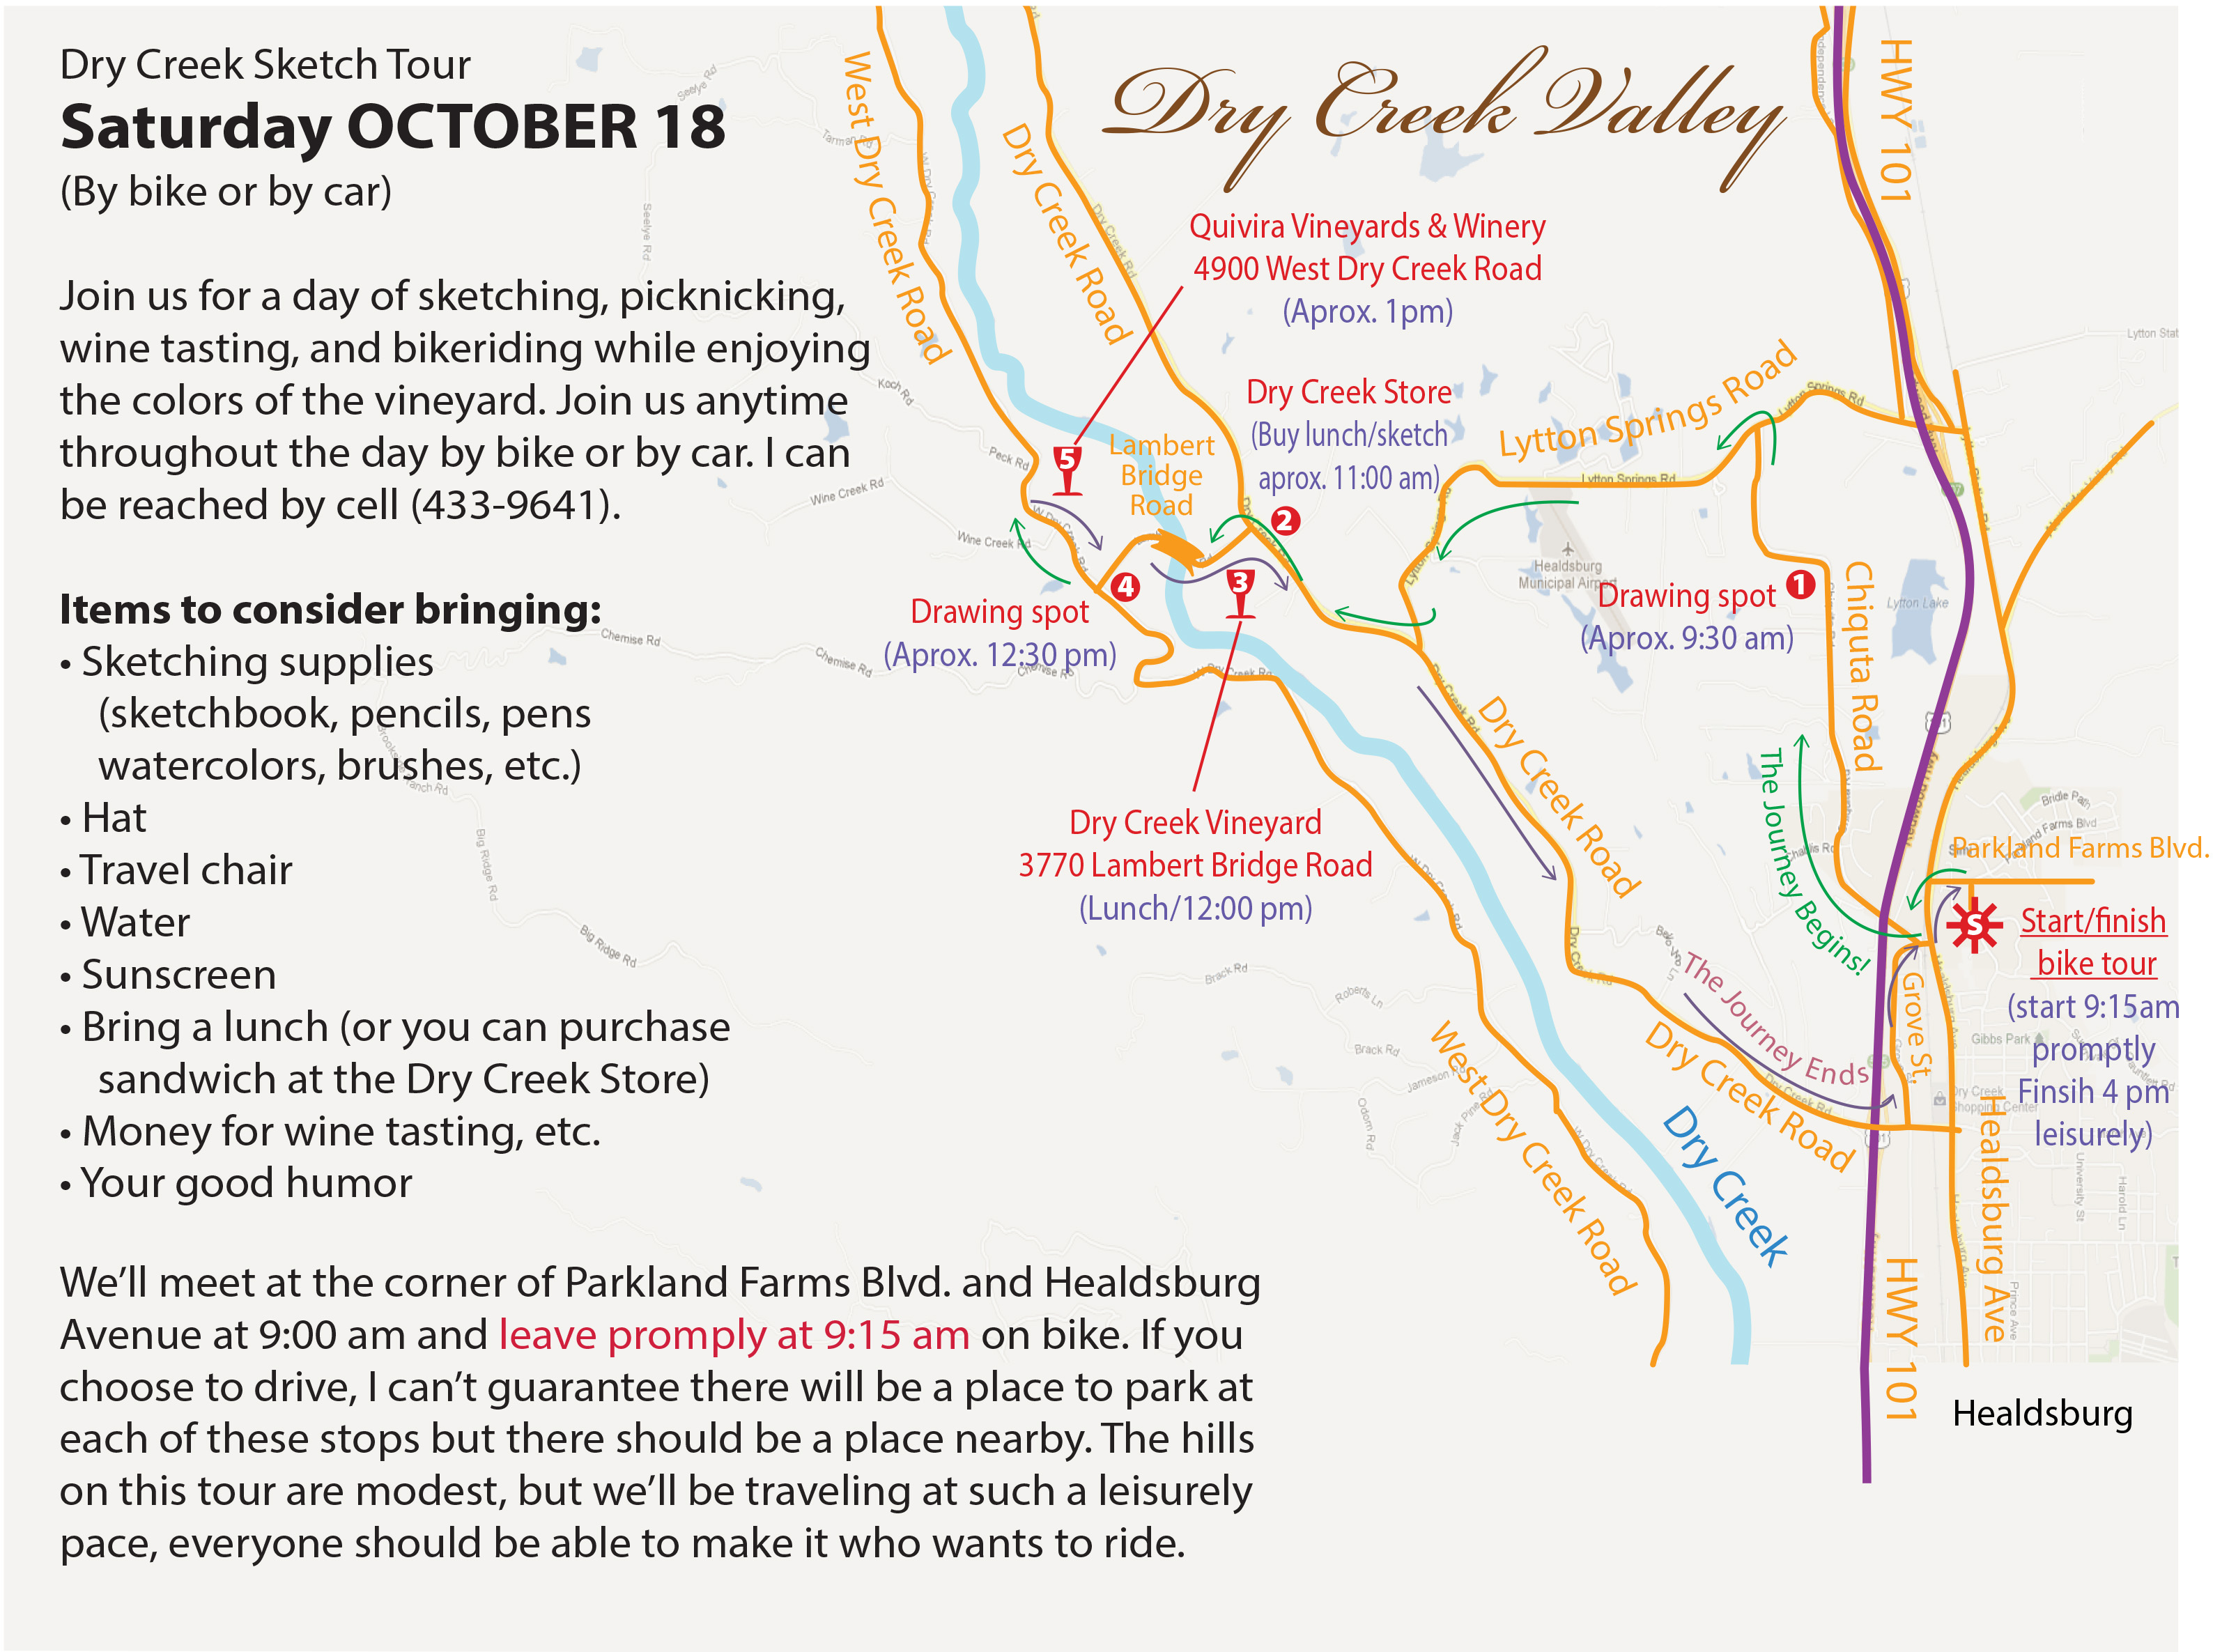 Dry Creek Valley Sketch Trip